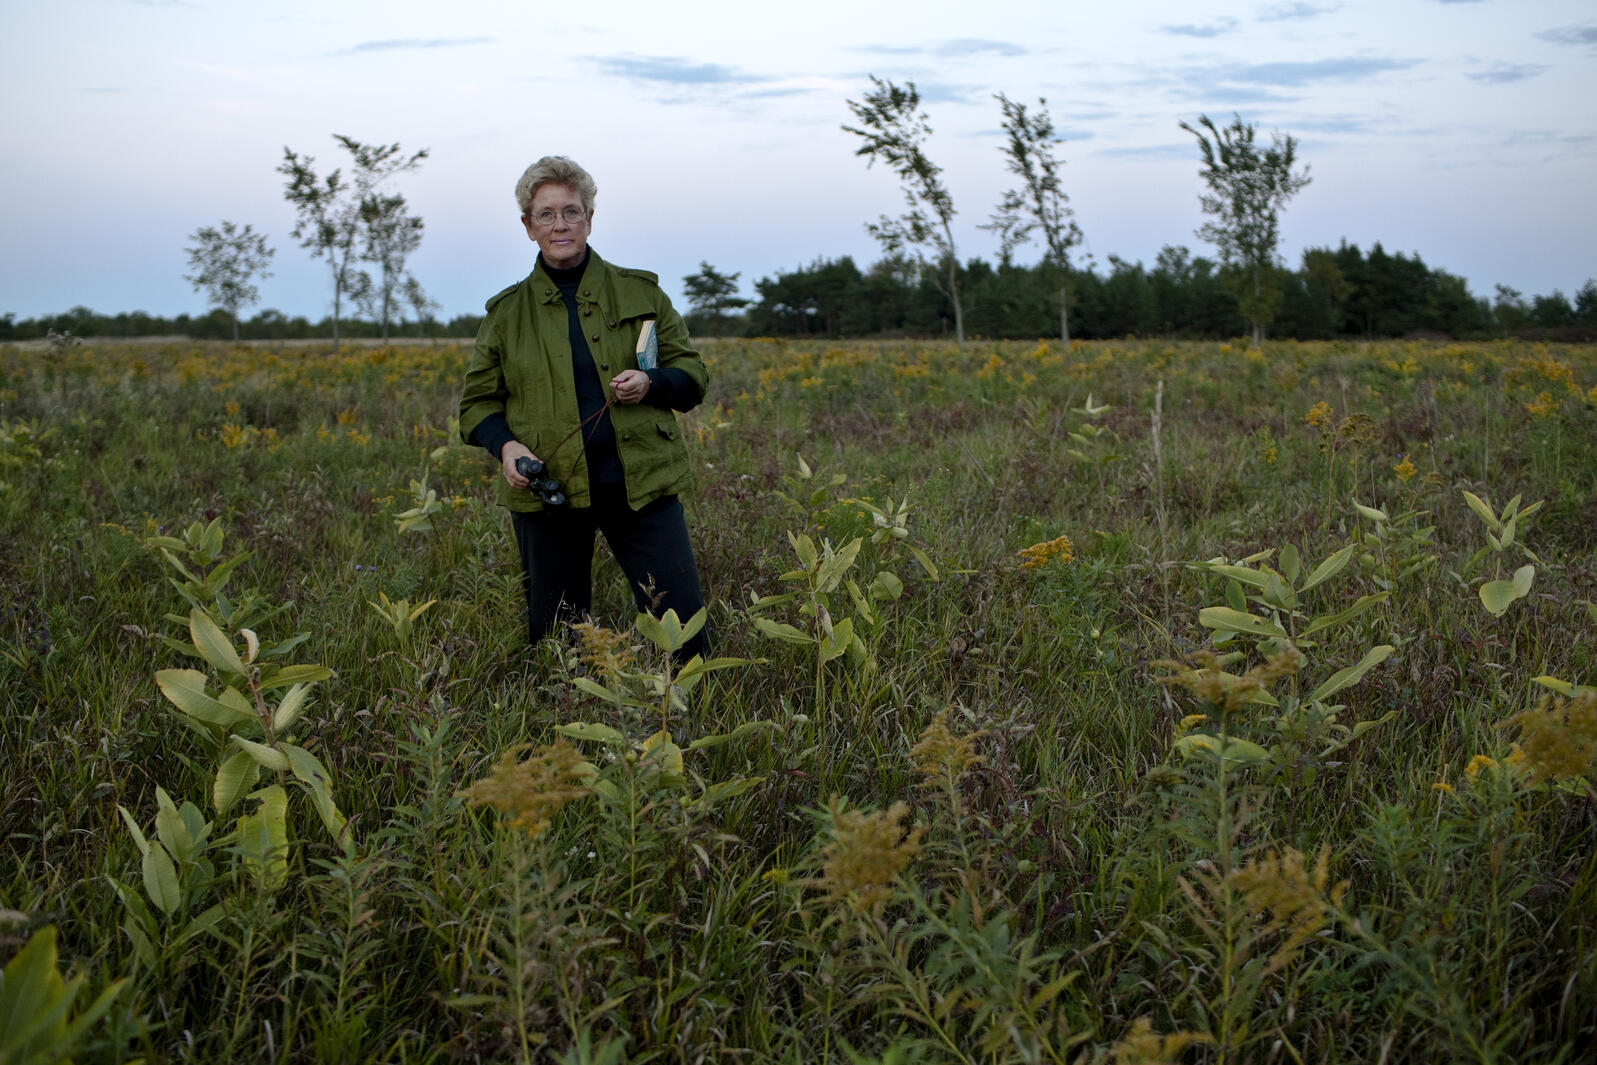 """Gail Miller knows she could easily sell her farm in New York, but because of how much it mattered to her father, she says, """"I just can't do that."""" Ben Stechschulte"""